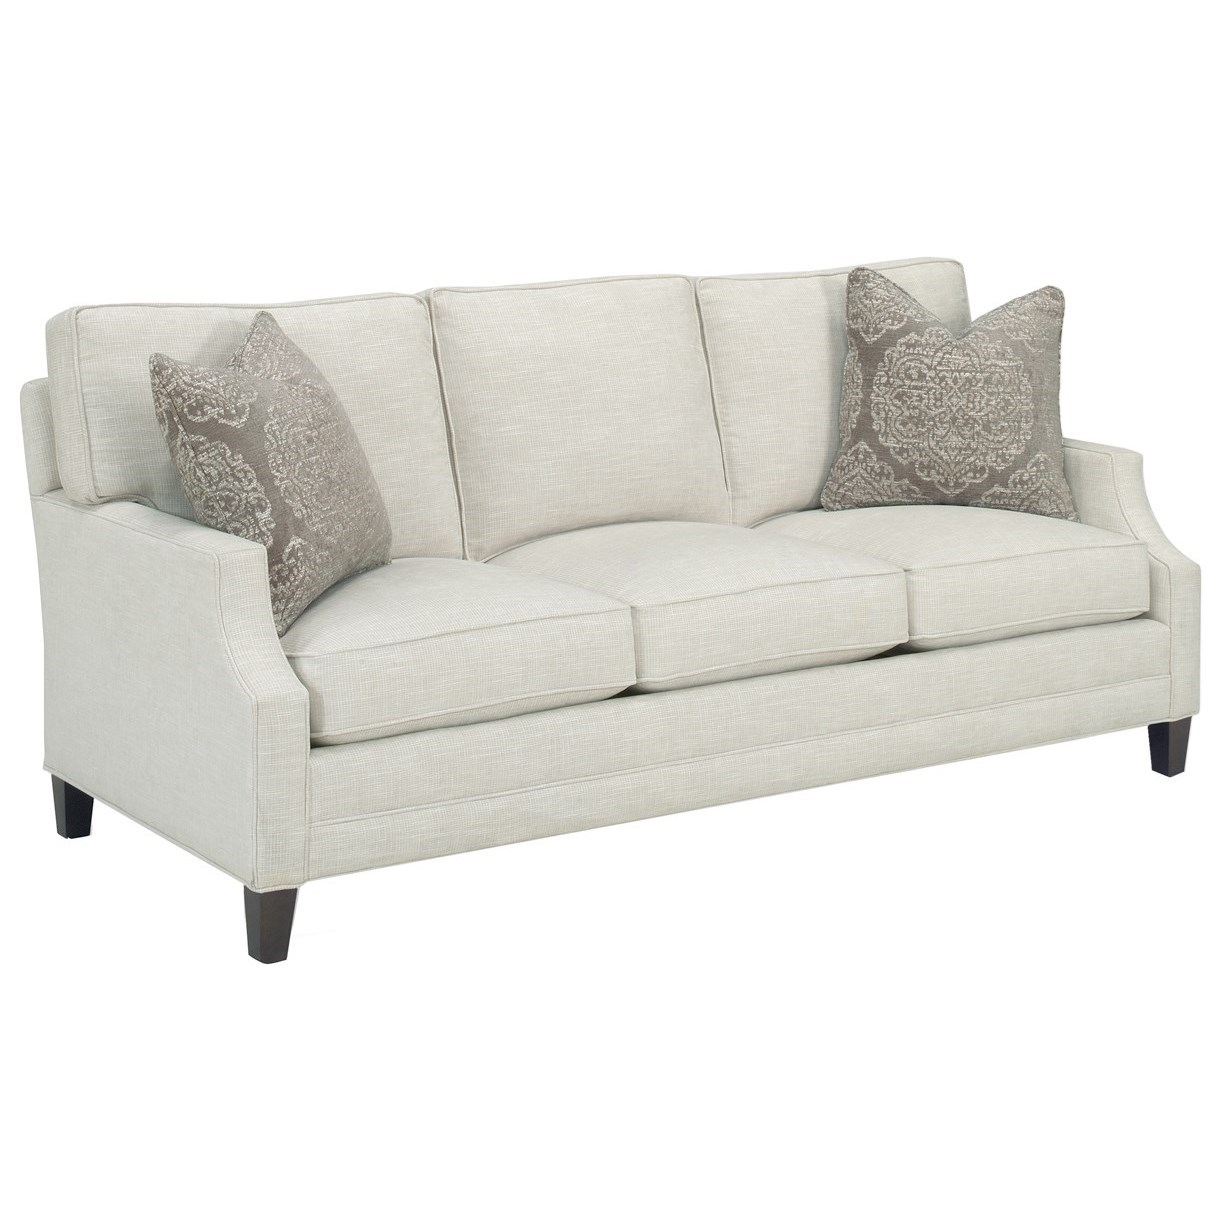 Personal Design Series Bristol Customizable Sofa by Lexington at Baer's Furniture